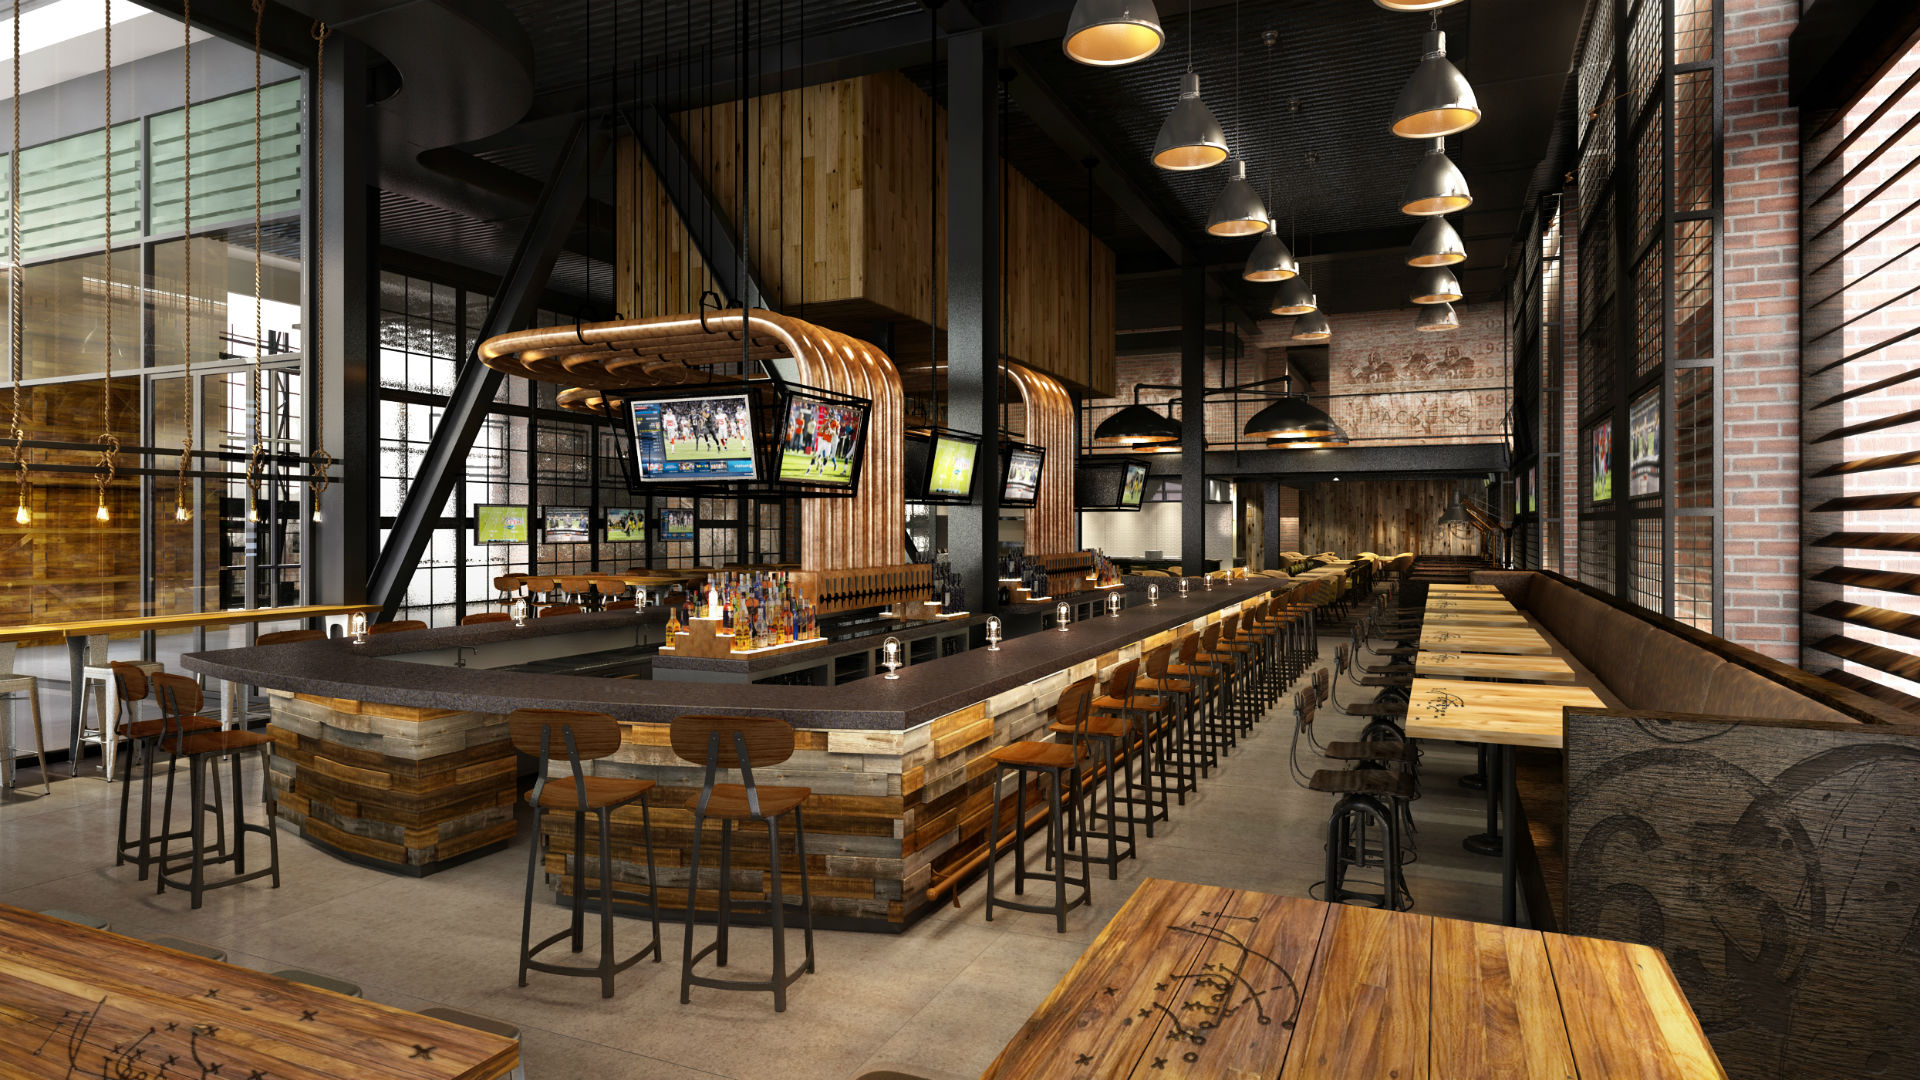 Backyard Kitchen And Tap Menu : New pub coming to Lambeau Field  NFL  Sporting News